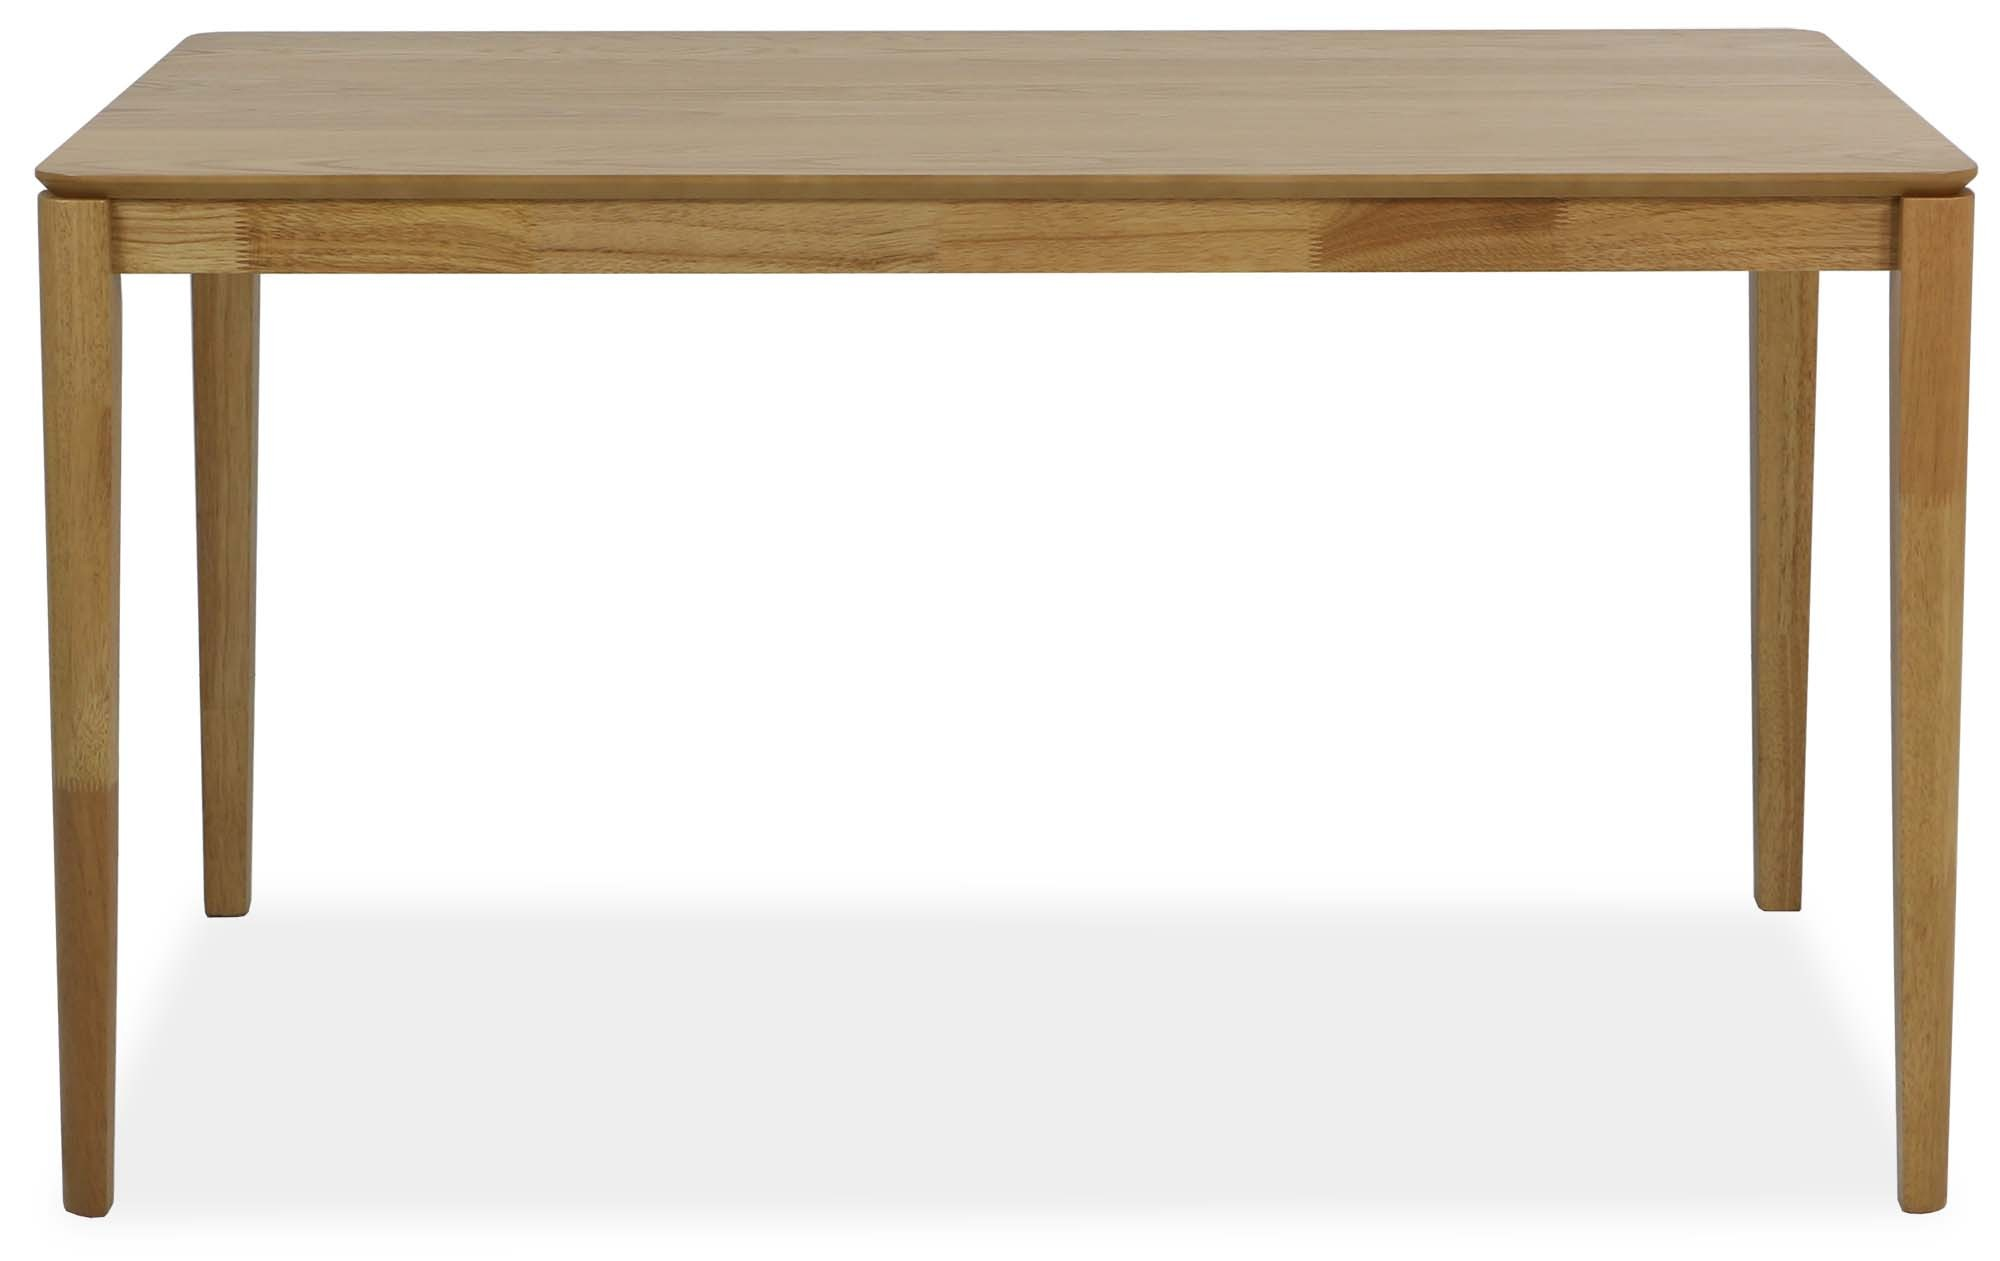 Royce dining table oak furniture home d cor fortytwo for Home decorators royce